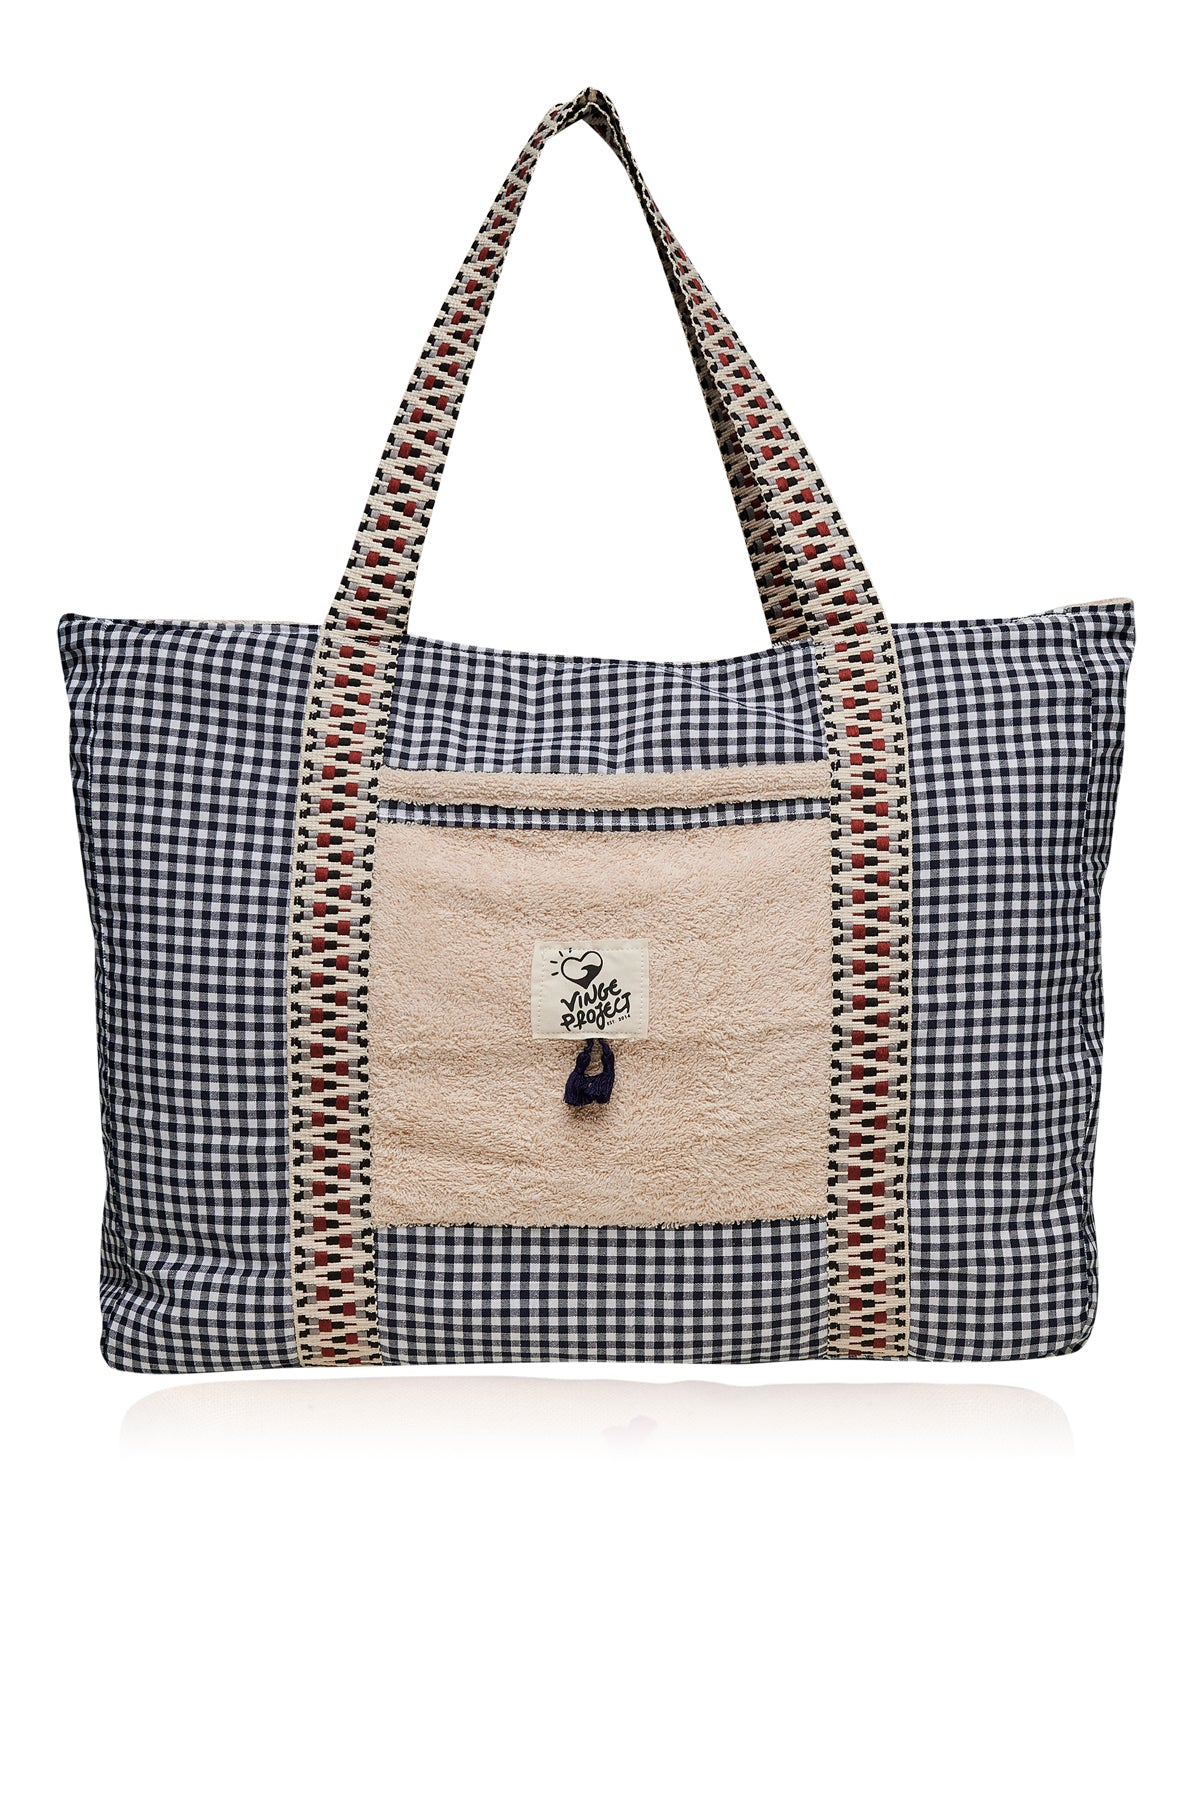 Cycladic in Blue Beach Bag ( 1 𝗟𝗔𝗦𝗧 𝗜𝗧𝗘𝗠𝗦 )